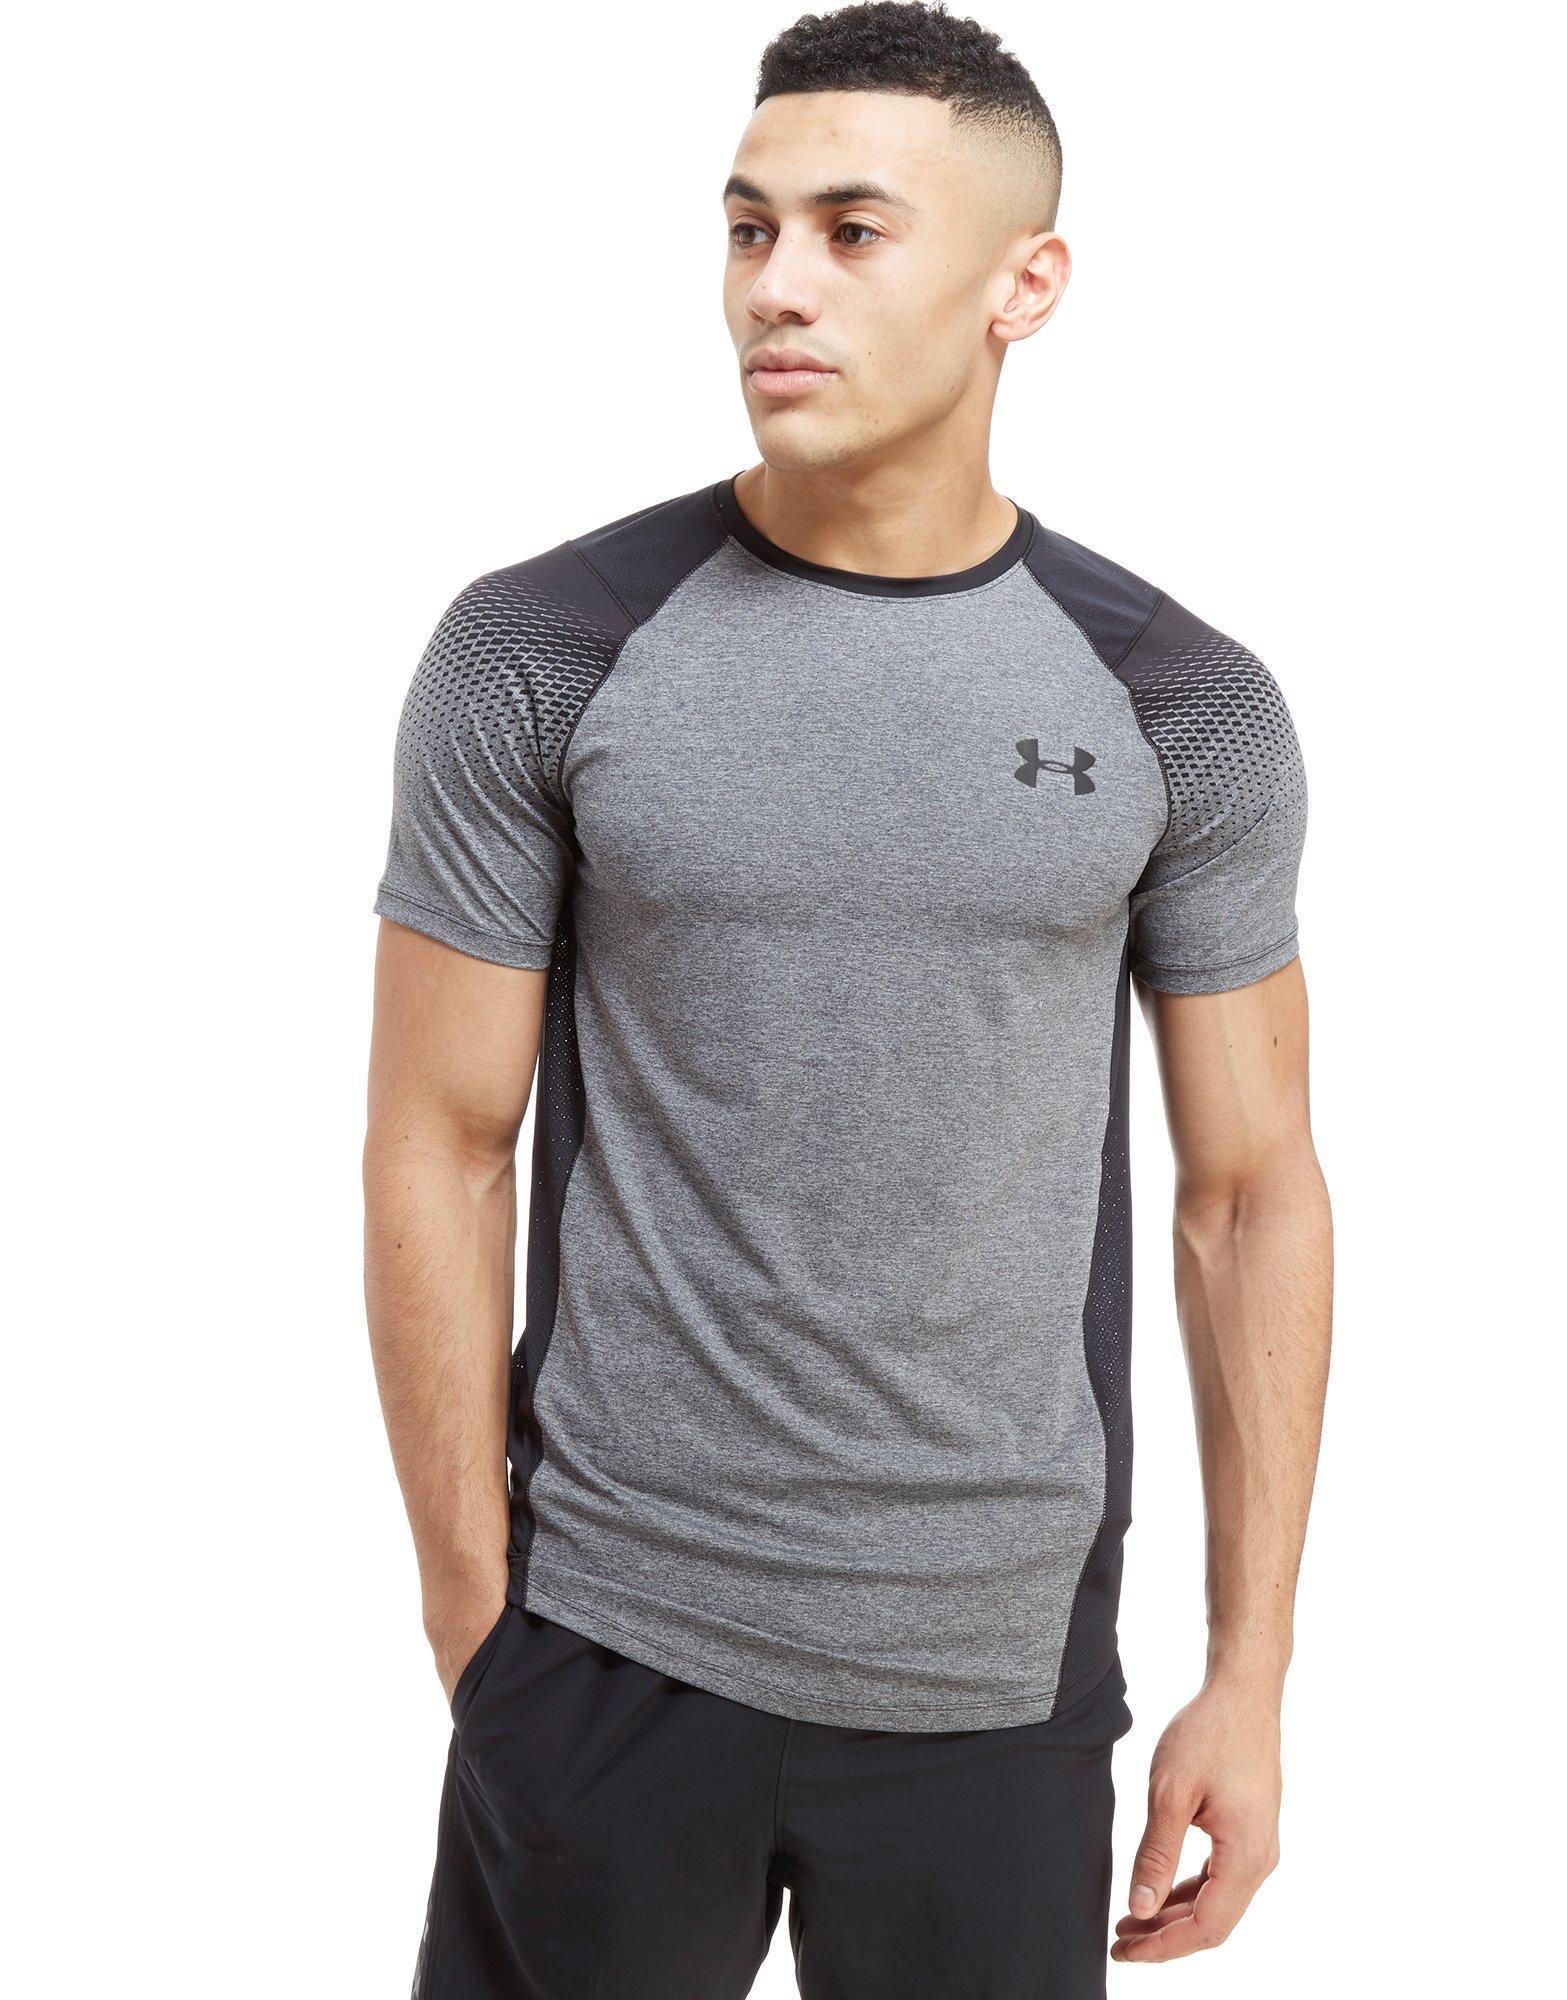 a7c7457d Under Armour Raid Dash T-shirt in Gray for Men - Lyst